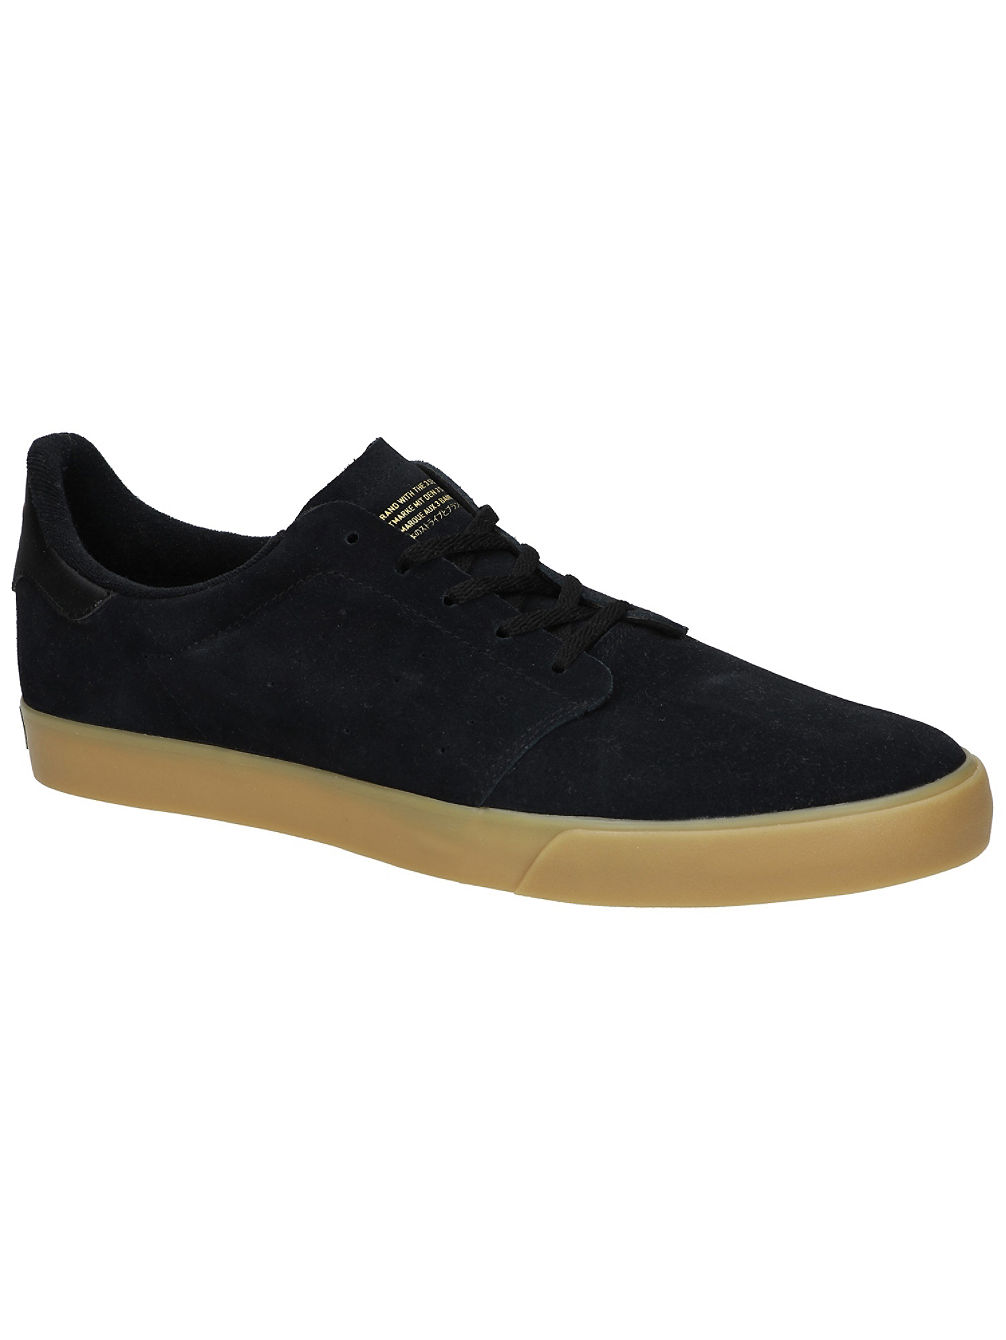 Seeley Court Skate Shoes